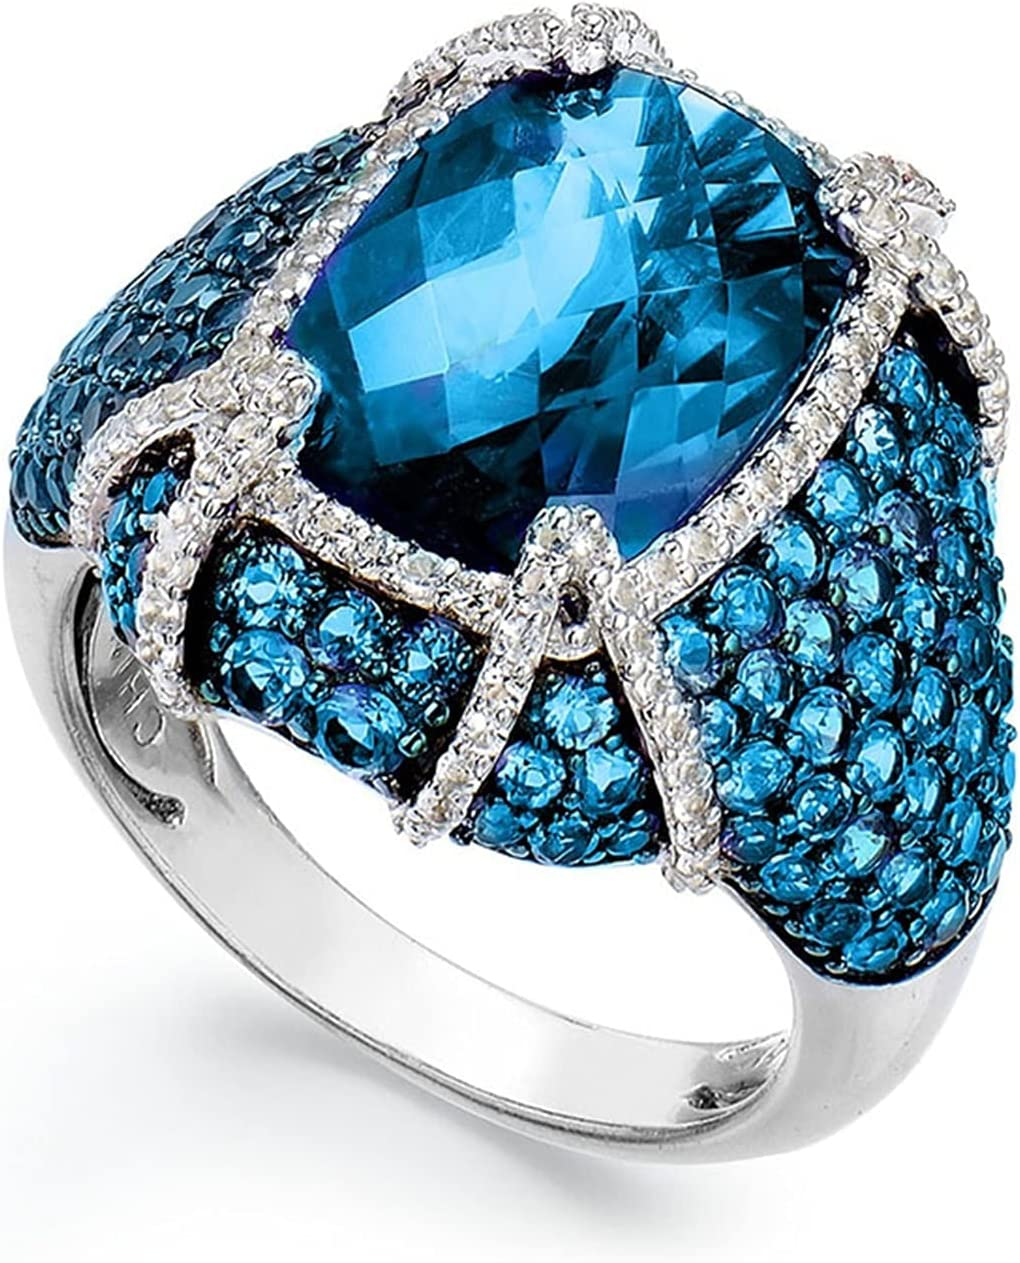 Ring Luxury Round Full Crystal Wedding Year-end annual account Rings Women Deluxe for Punk Men'